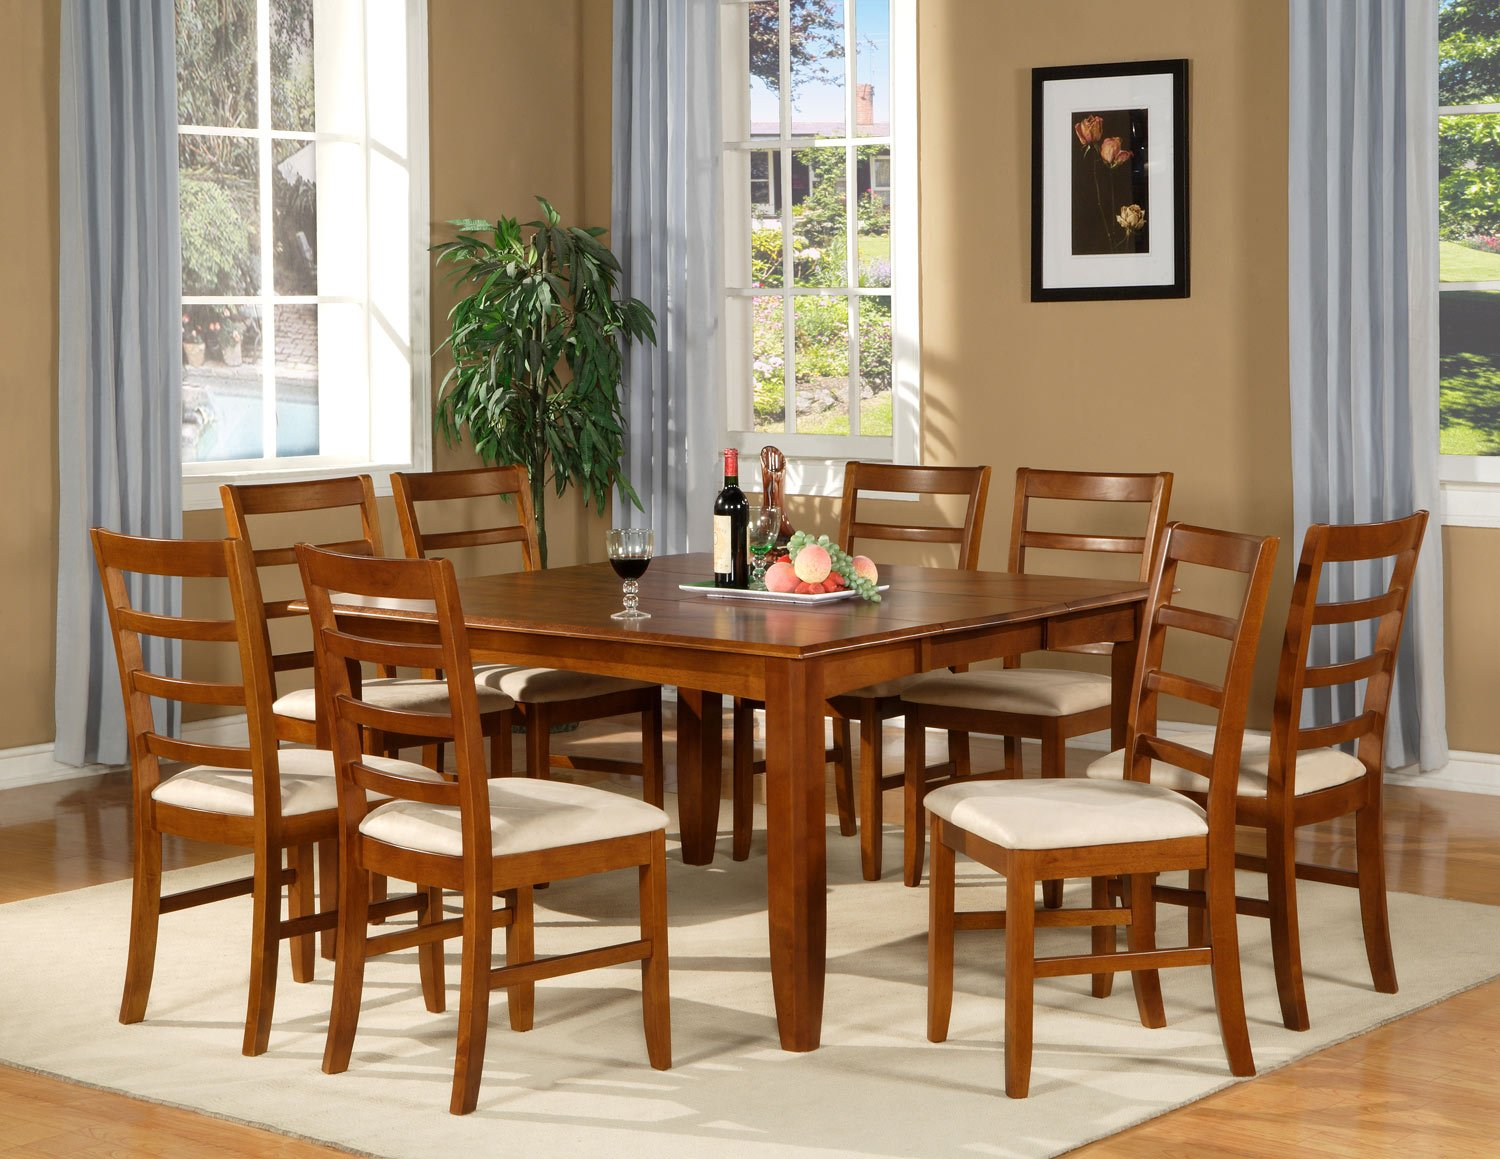 "Parfait 7-Pc Square Gathering Dining Table Set-54""x54""-Extension leaf in Saddle Brown. SKU: PA7-SBR"